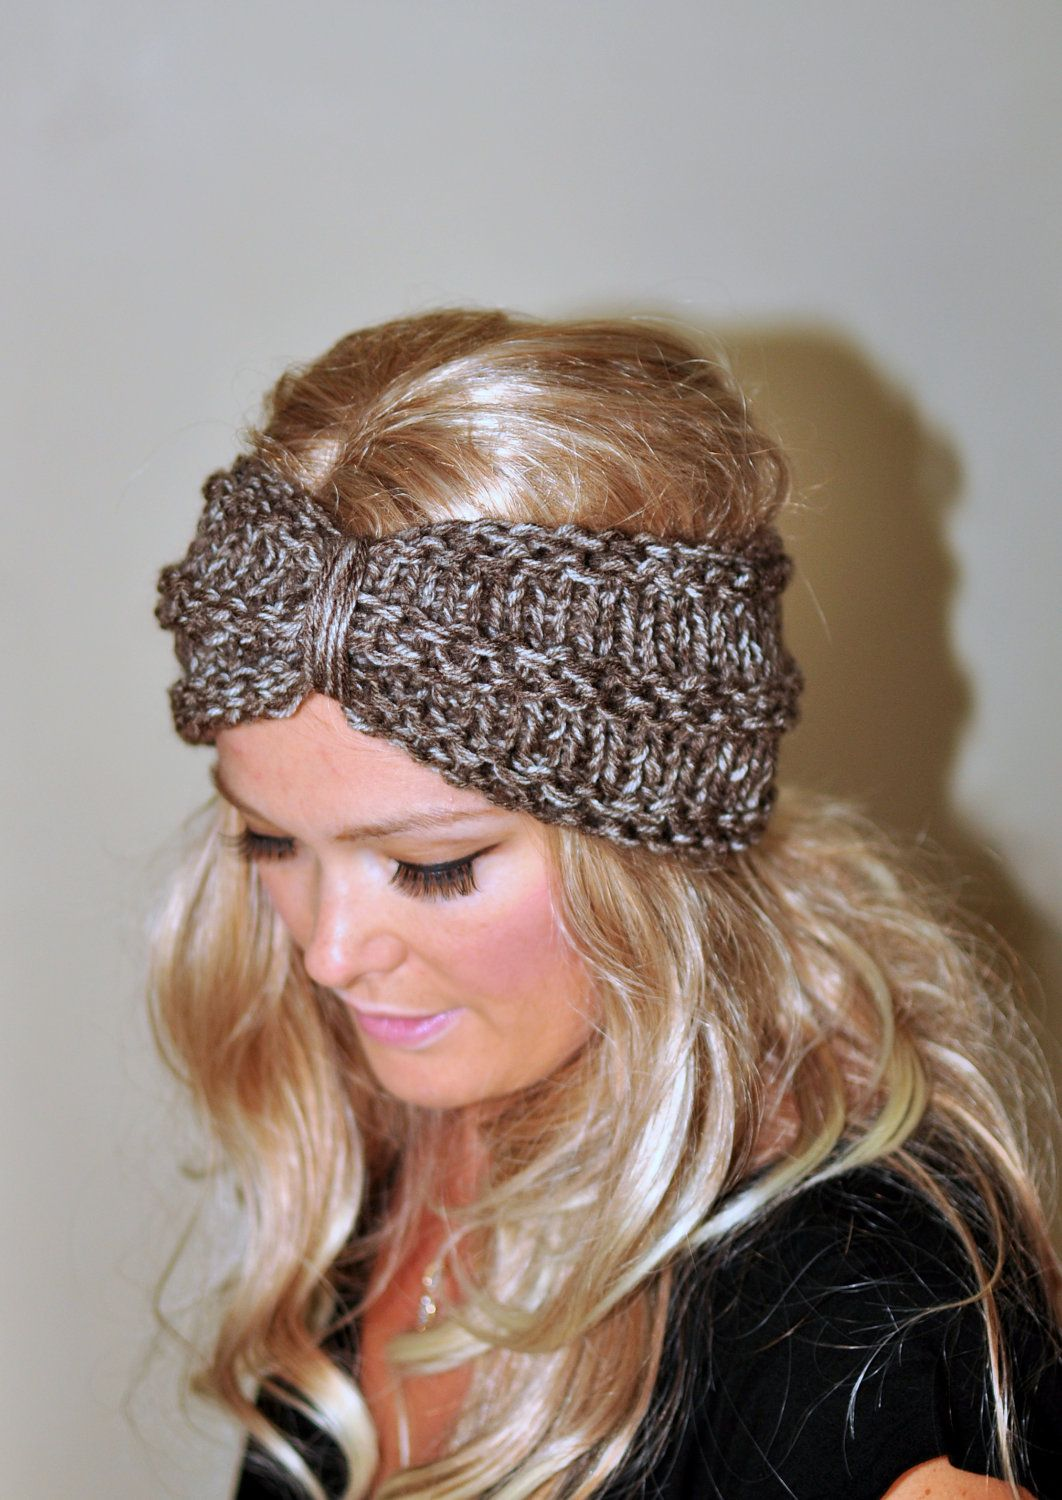 Turban+Headband+Crochet+Head+wrap+Knit+ear+warmer+by+lucymir,+USD29.99 Fashio...